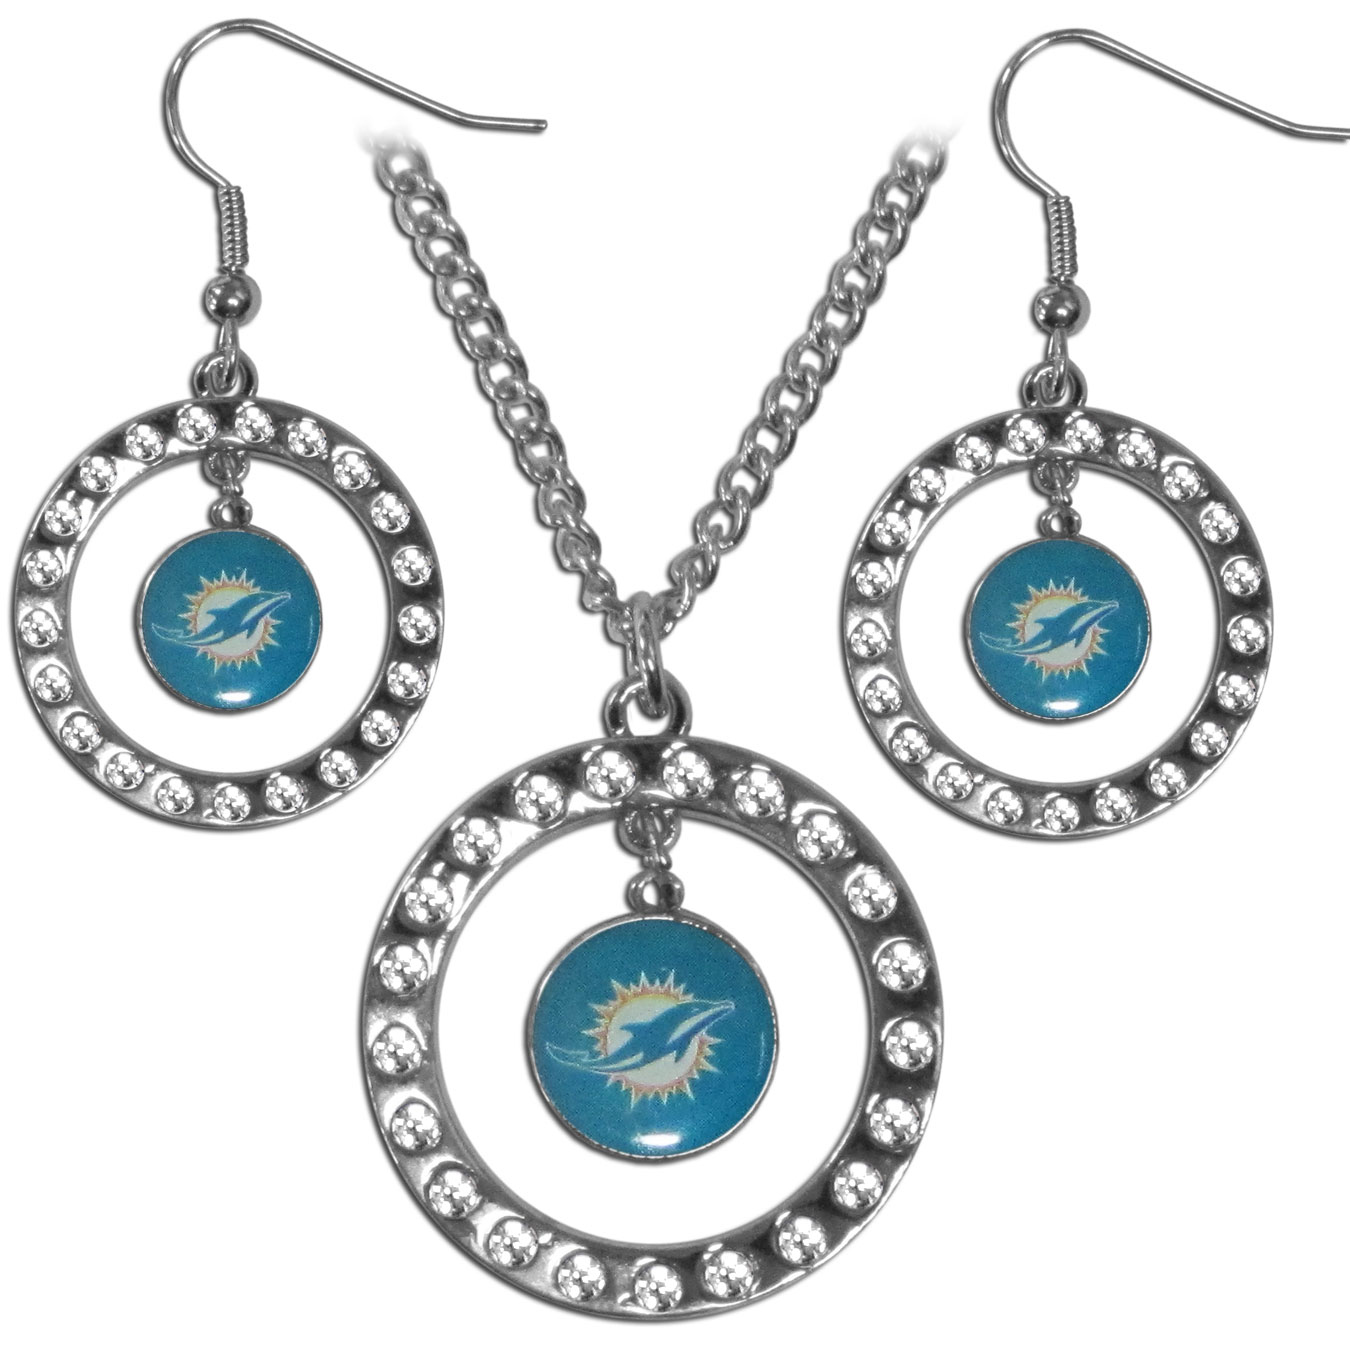 Miami Dolphins Rhinestone Hoop Jewelry Set - This officially licensed Miami Dolphins jewelry set includes our rhinestone hoop earrings and pendant in a gift box. The 1 inch rhinestone hoop pendant comes on an 18 inch chain and is paired with the matching dangle hoop earrings.